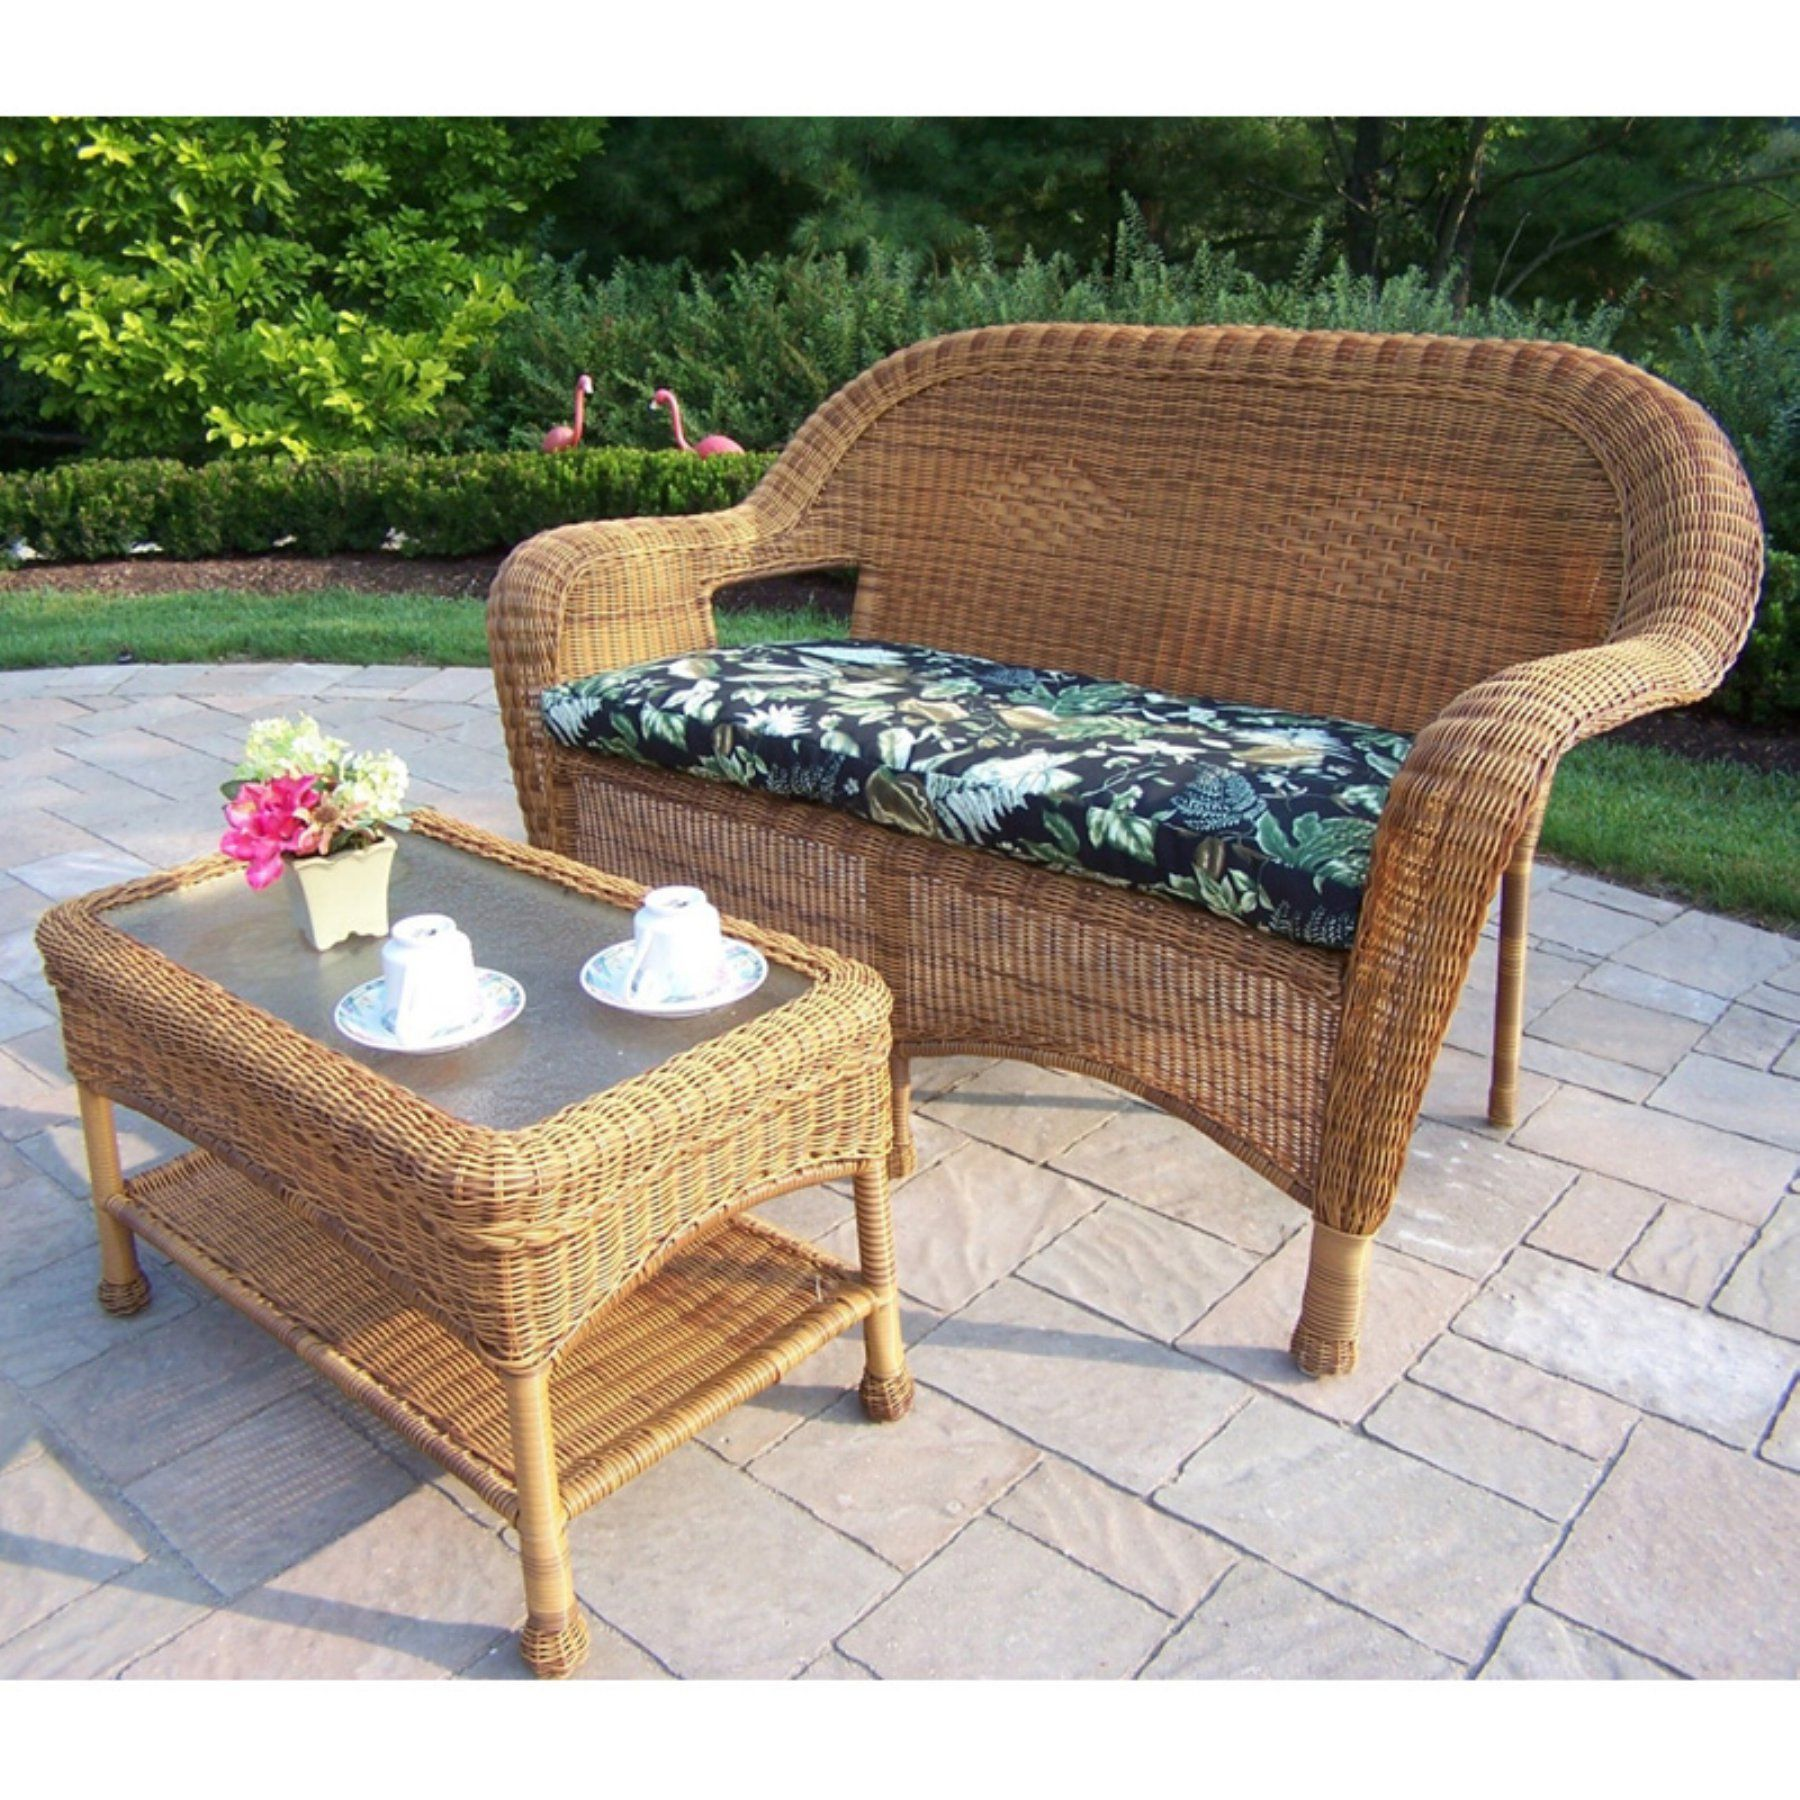 Outdoor Oakland Living All Weather Wicker Loveseat And Coffee Table Set    90027 2